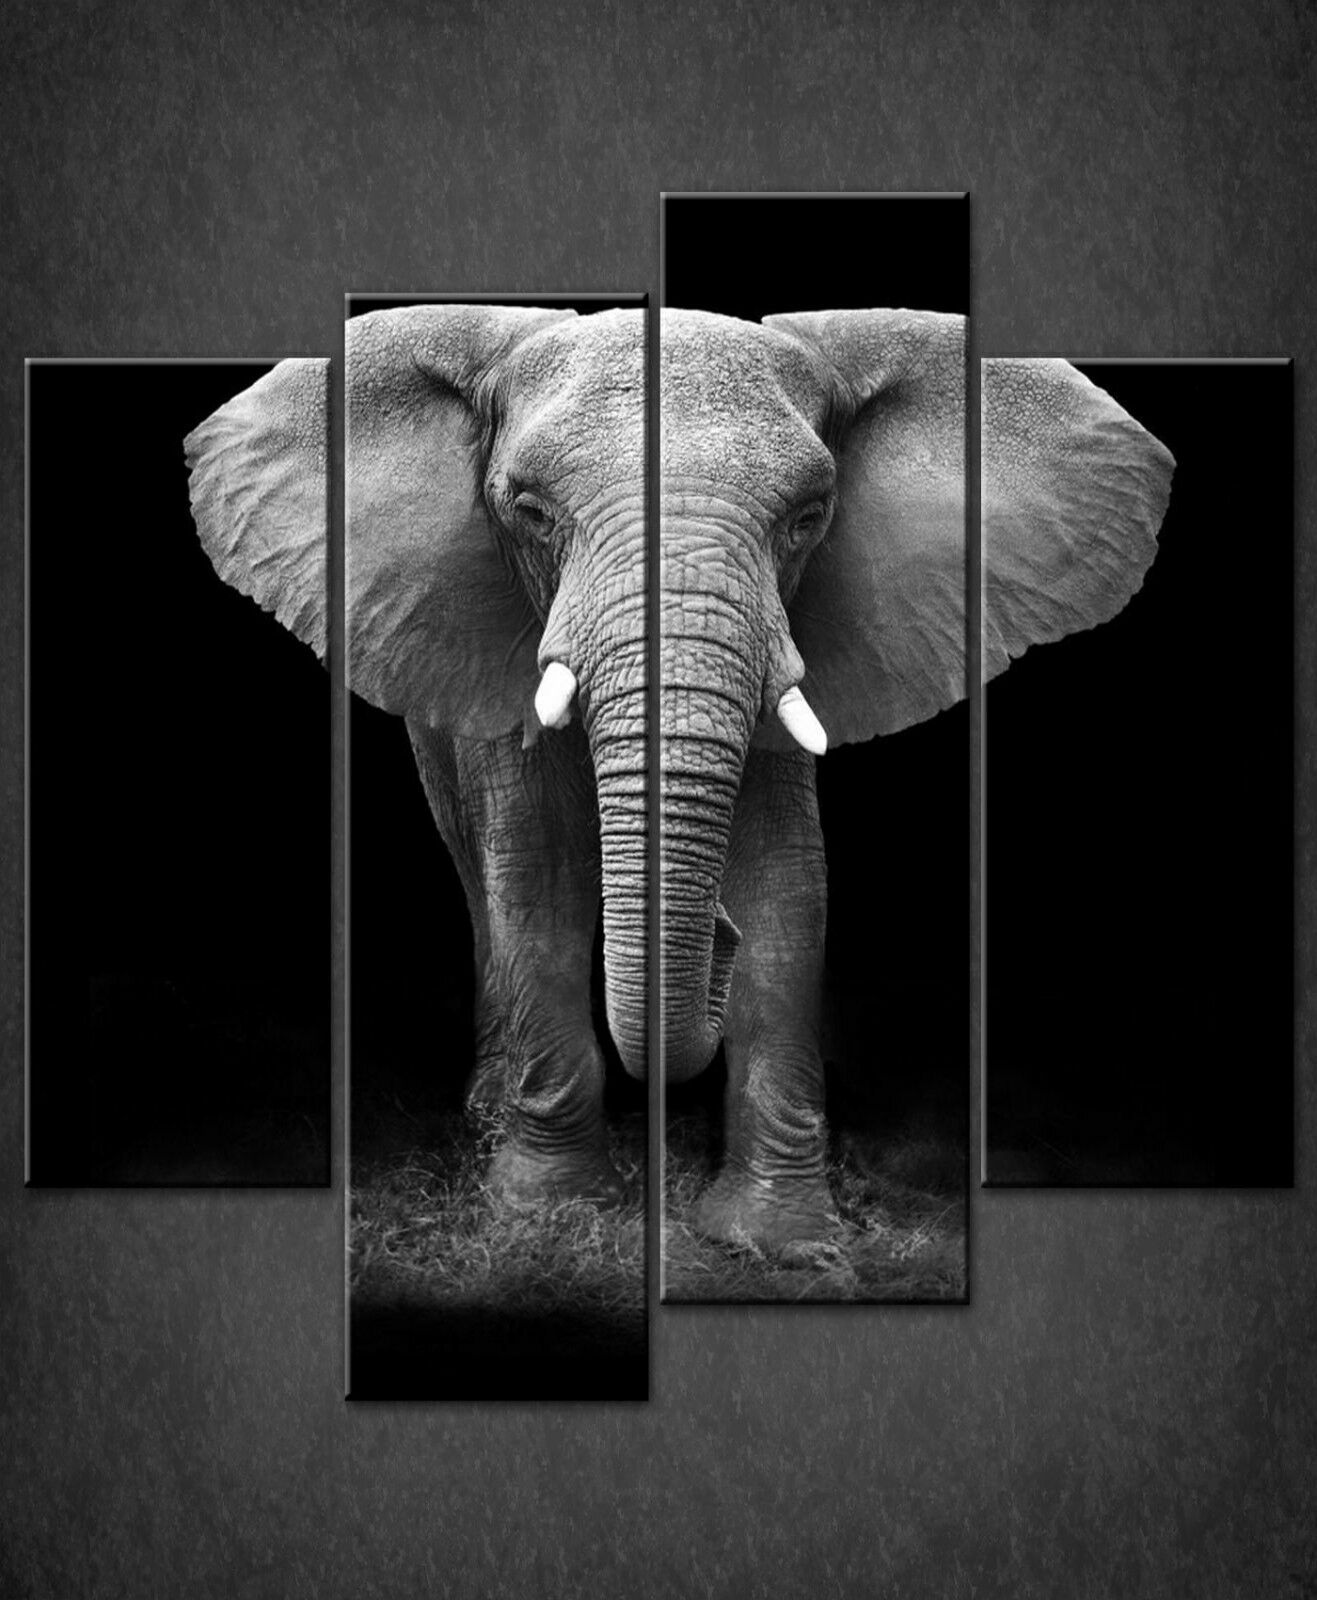 RAGING ELEPHANT CANVAS PRINT PICTURE WALL ART ABSTRACT DESIGN SET OF 4